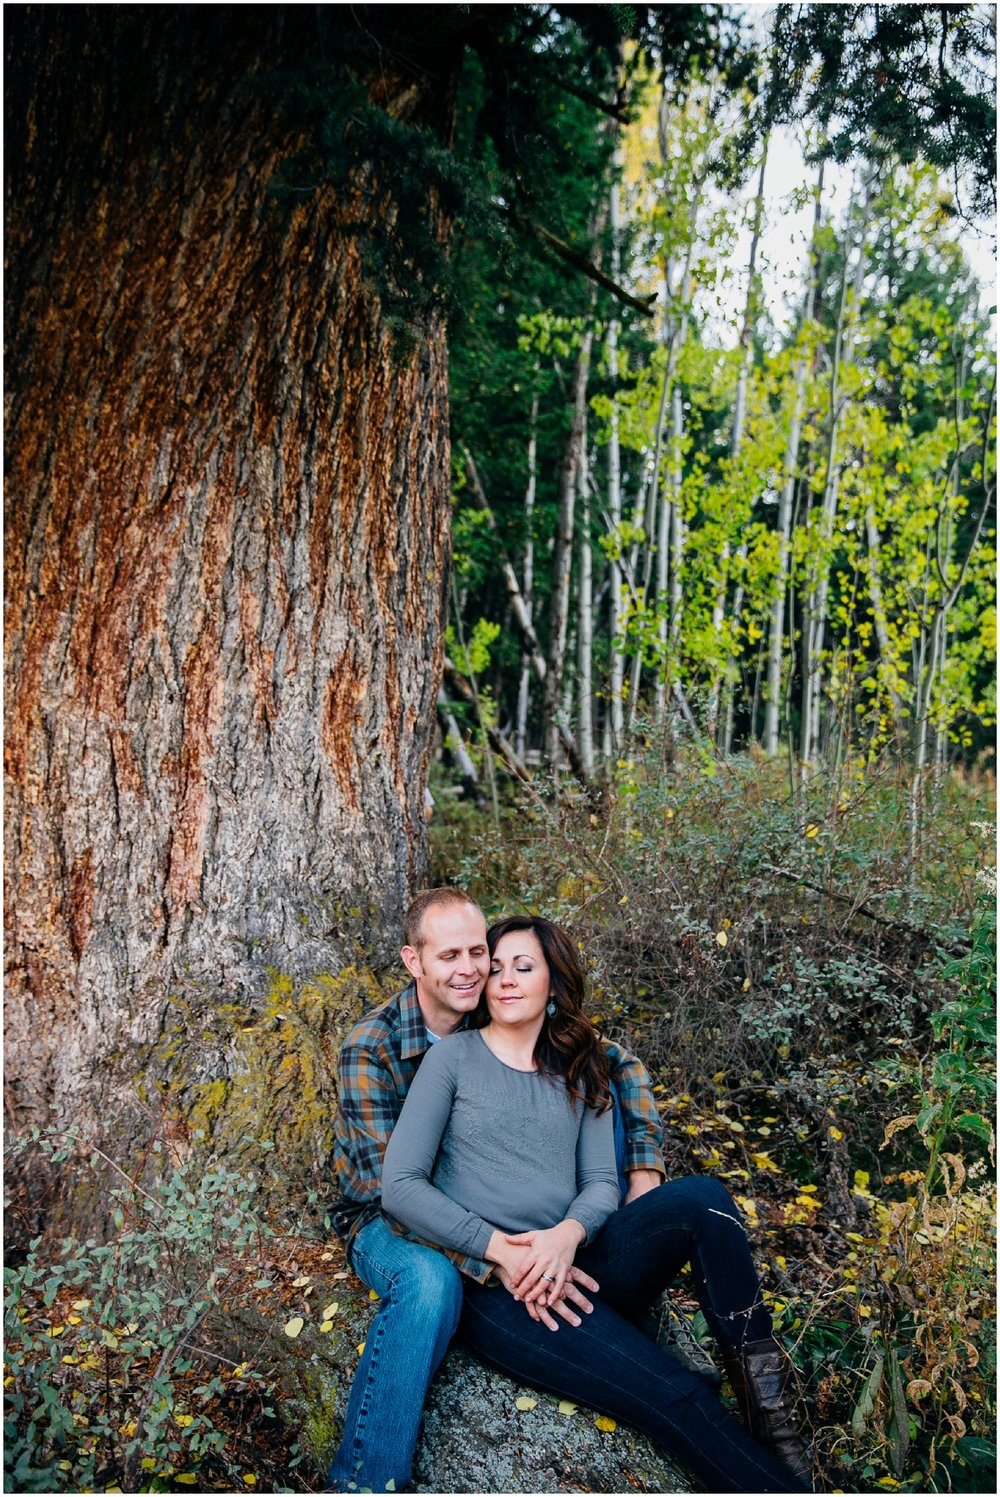 island-park-idaho-wyoming-engagements-idaho-colorado-wyoming-wedding-photographer_0929.jpg